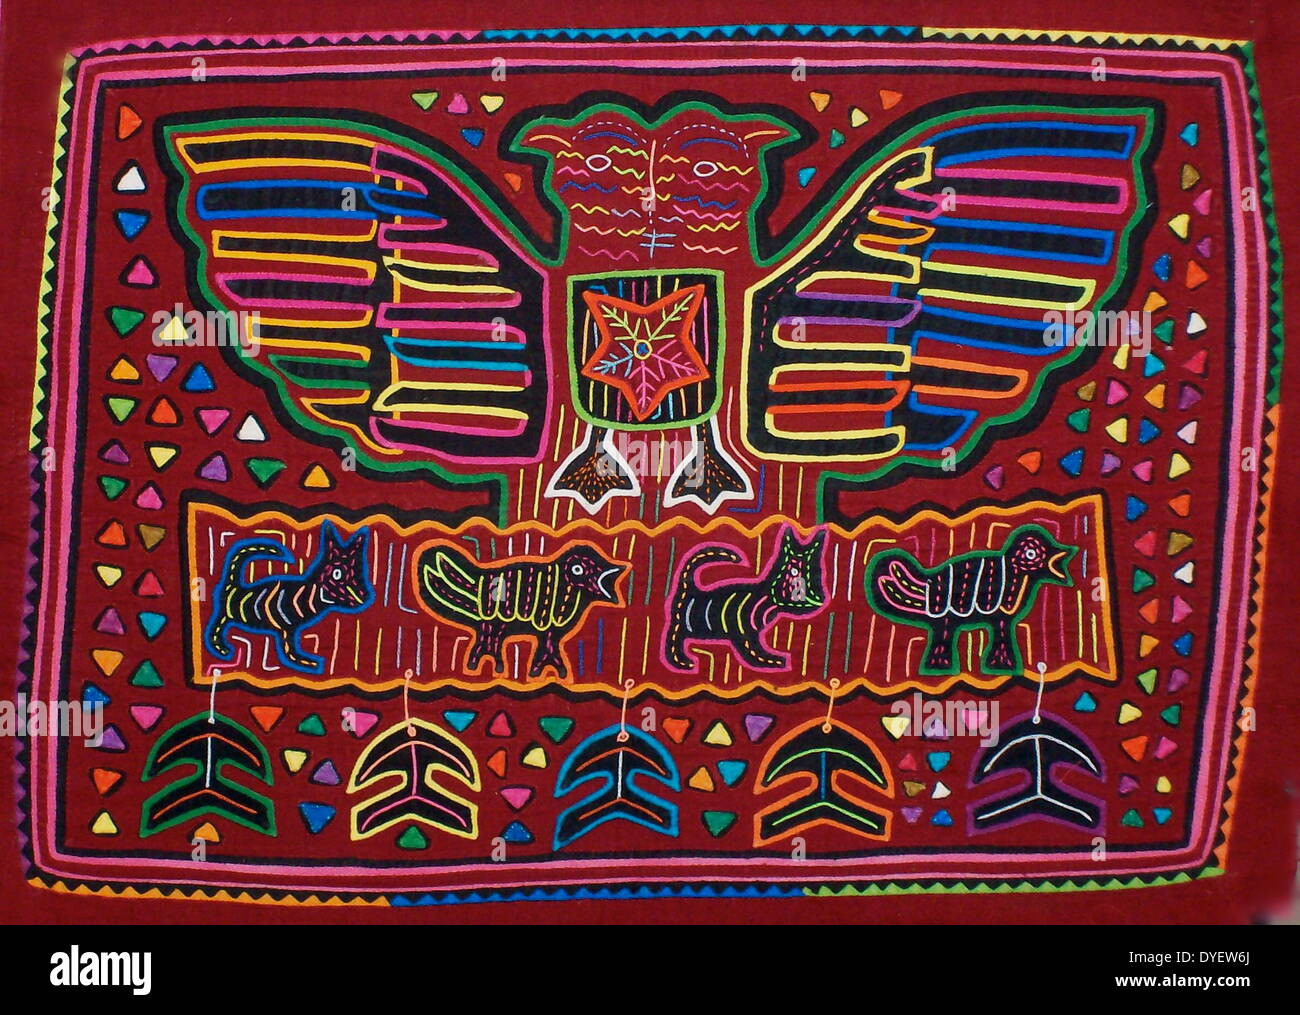 Mola Kuna par artiste textile indien Photo Stock